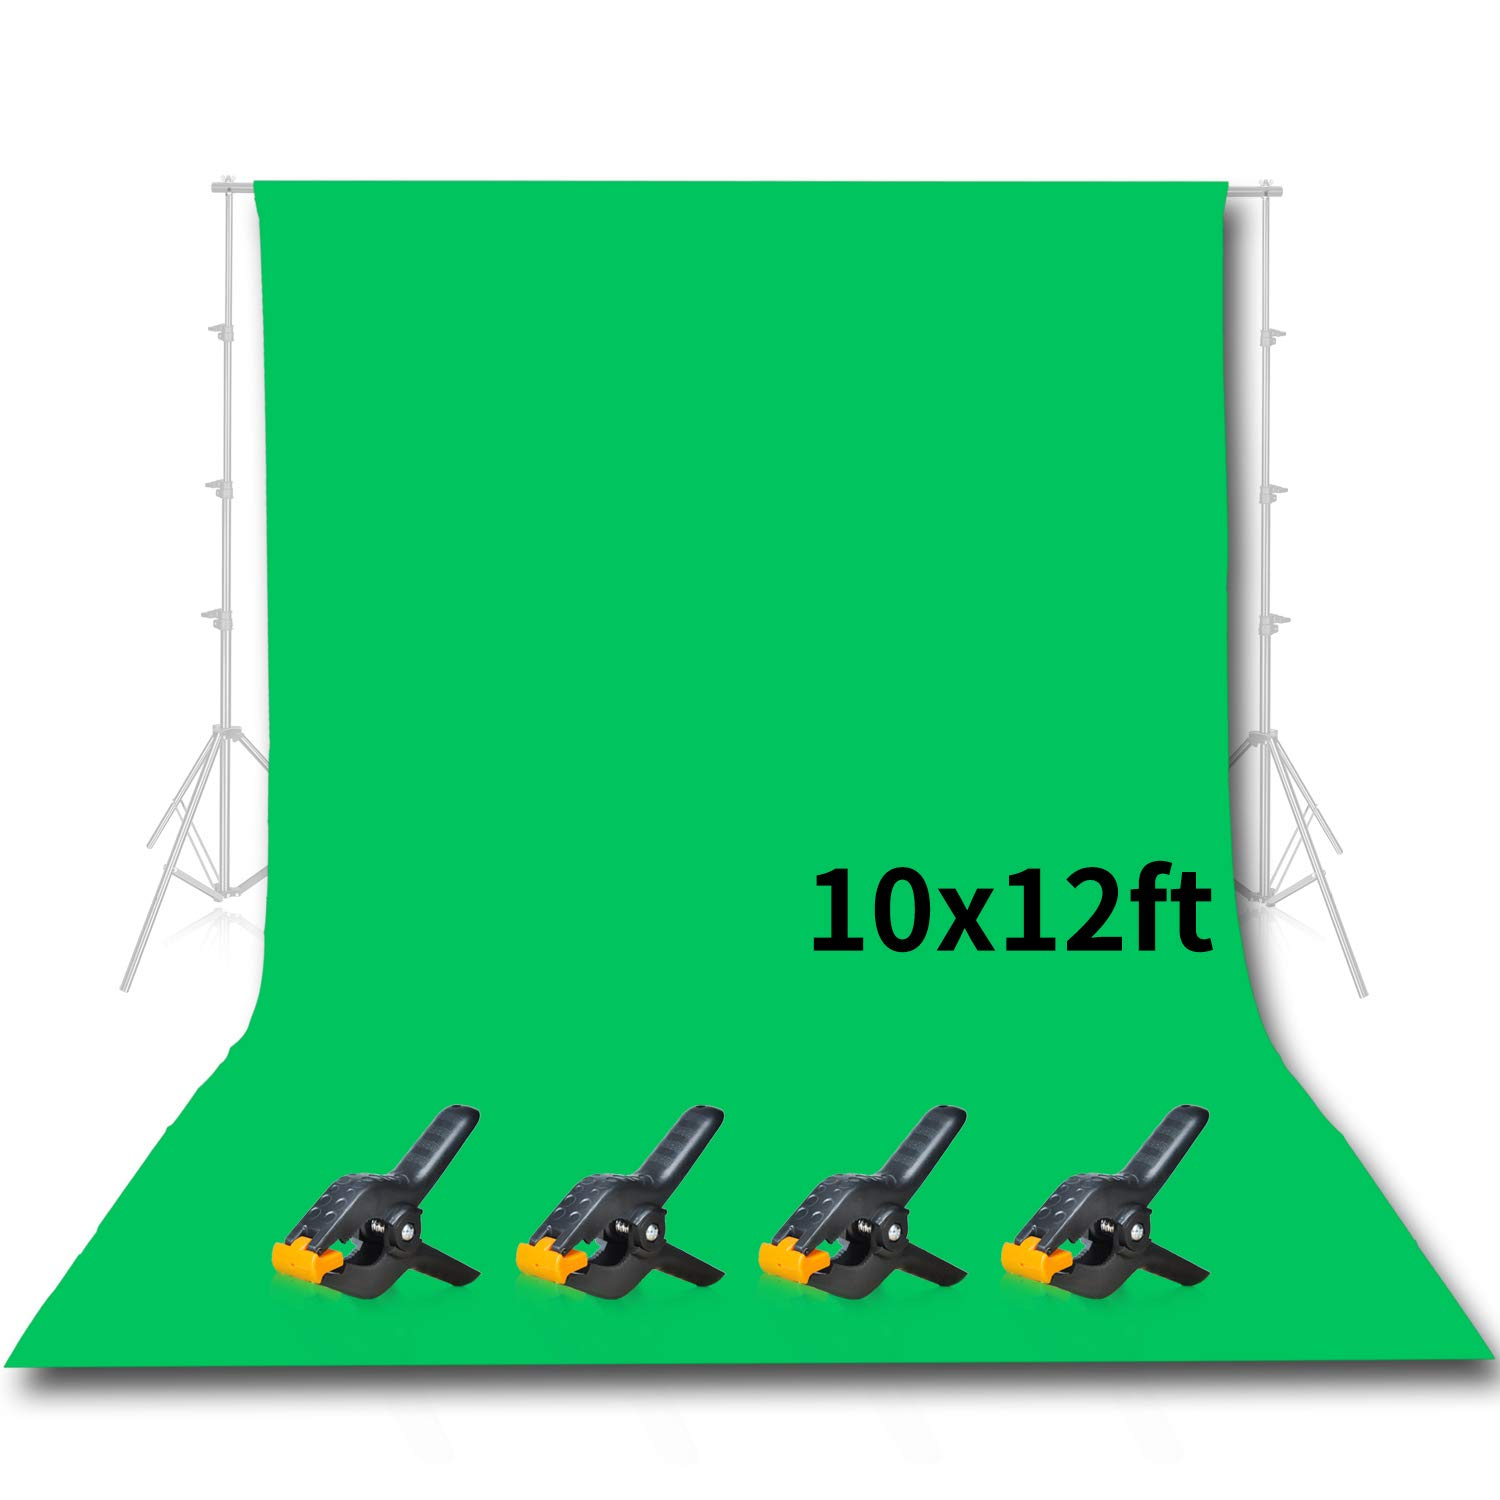 Emart Photo Studio 10 x 12ft Green Backdrop Screen, Seamless Chromakey Backdrop Muslin Background Screen for Photography by EMART